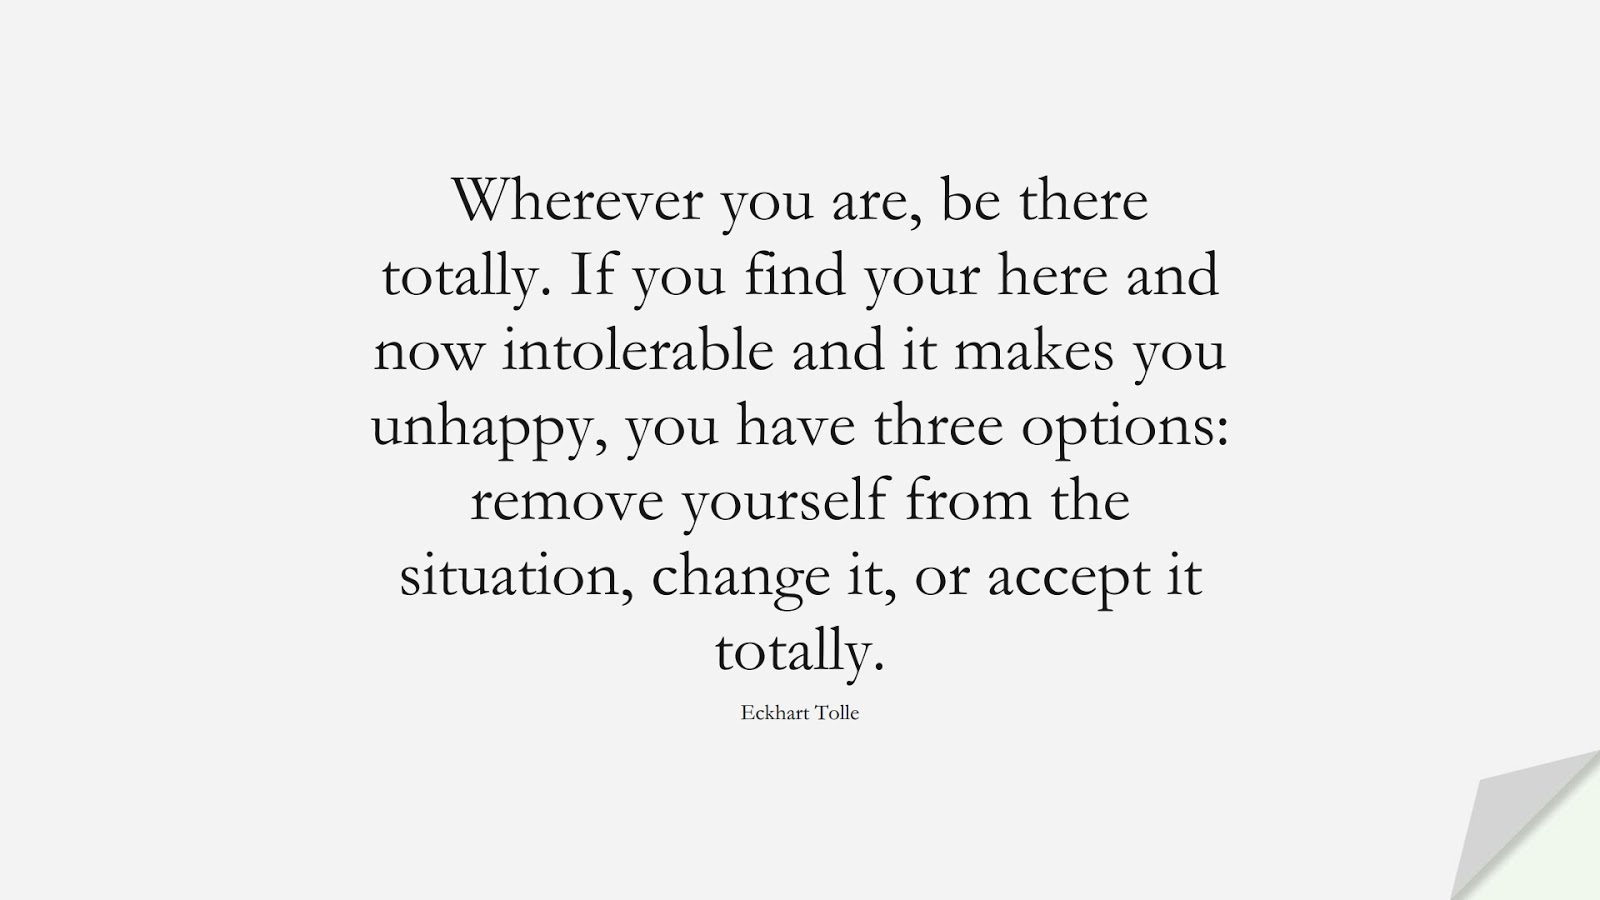 Wherever you are, be there totally. If you find your here and now intolerable and it makes you unhappy, you have three options: remove yourself from the situation, change it, or accept it totally. (Eckhart Tolle);  #AnxietyQuotes